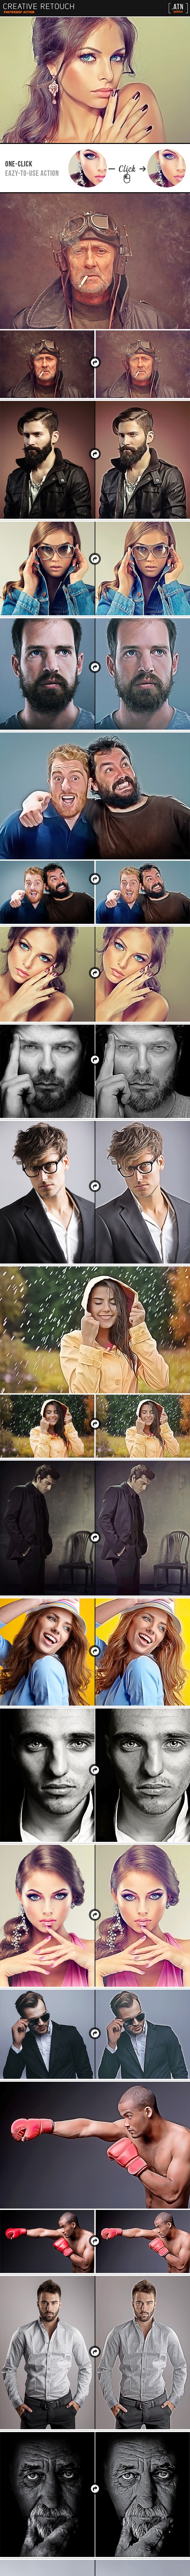 Creative Retouch - Photo Effects Actions